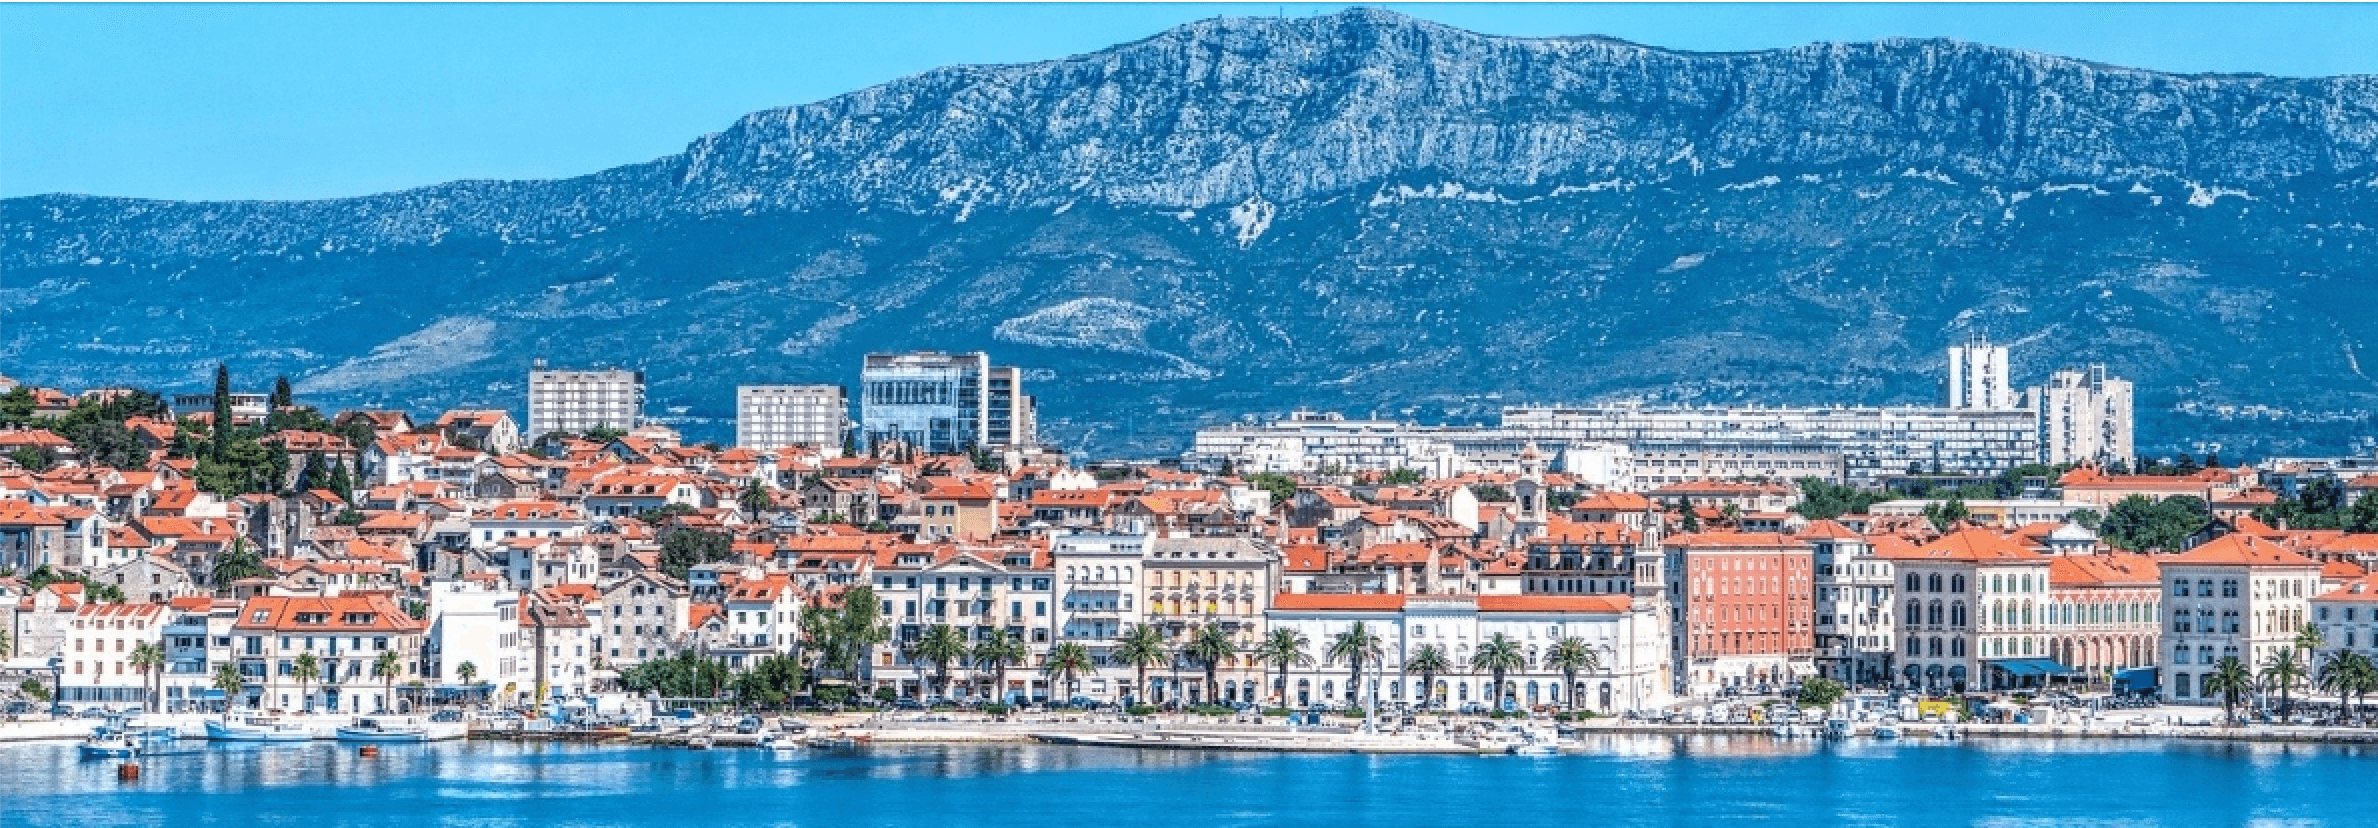 Is Croatia a Good Place to Invest in Real Estate?